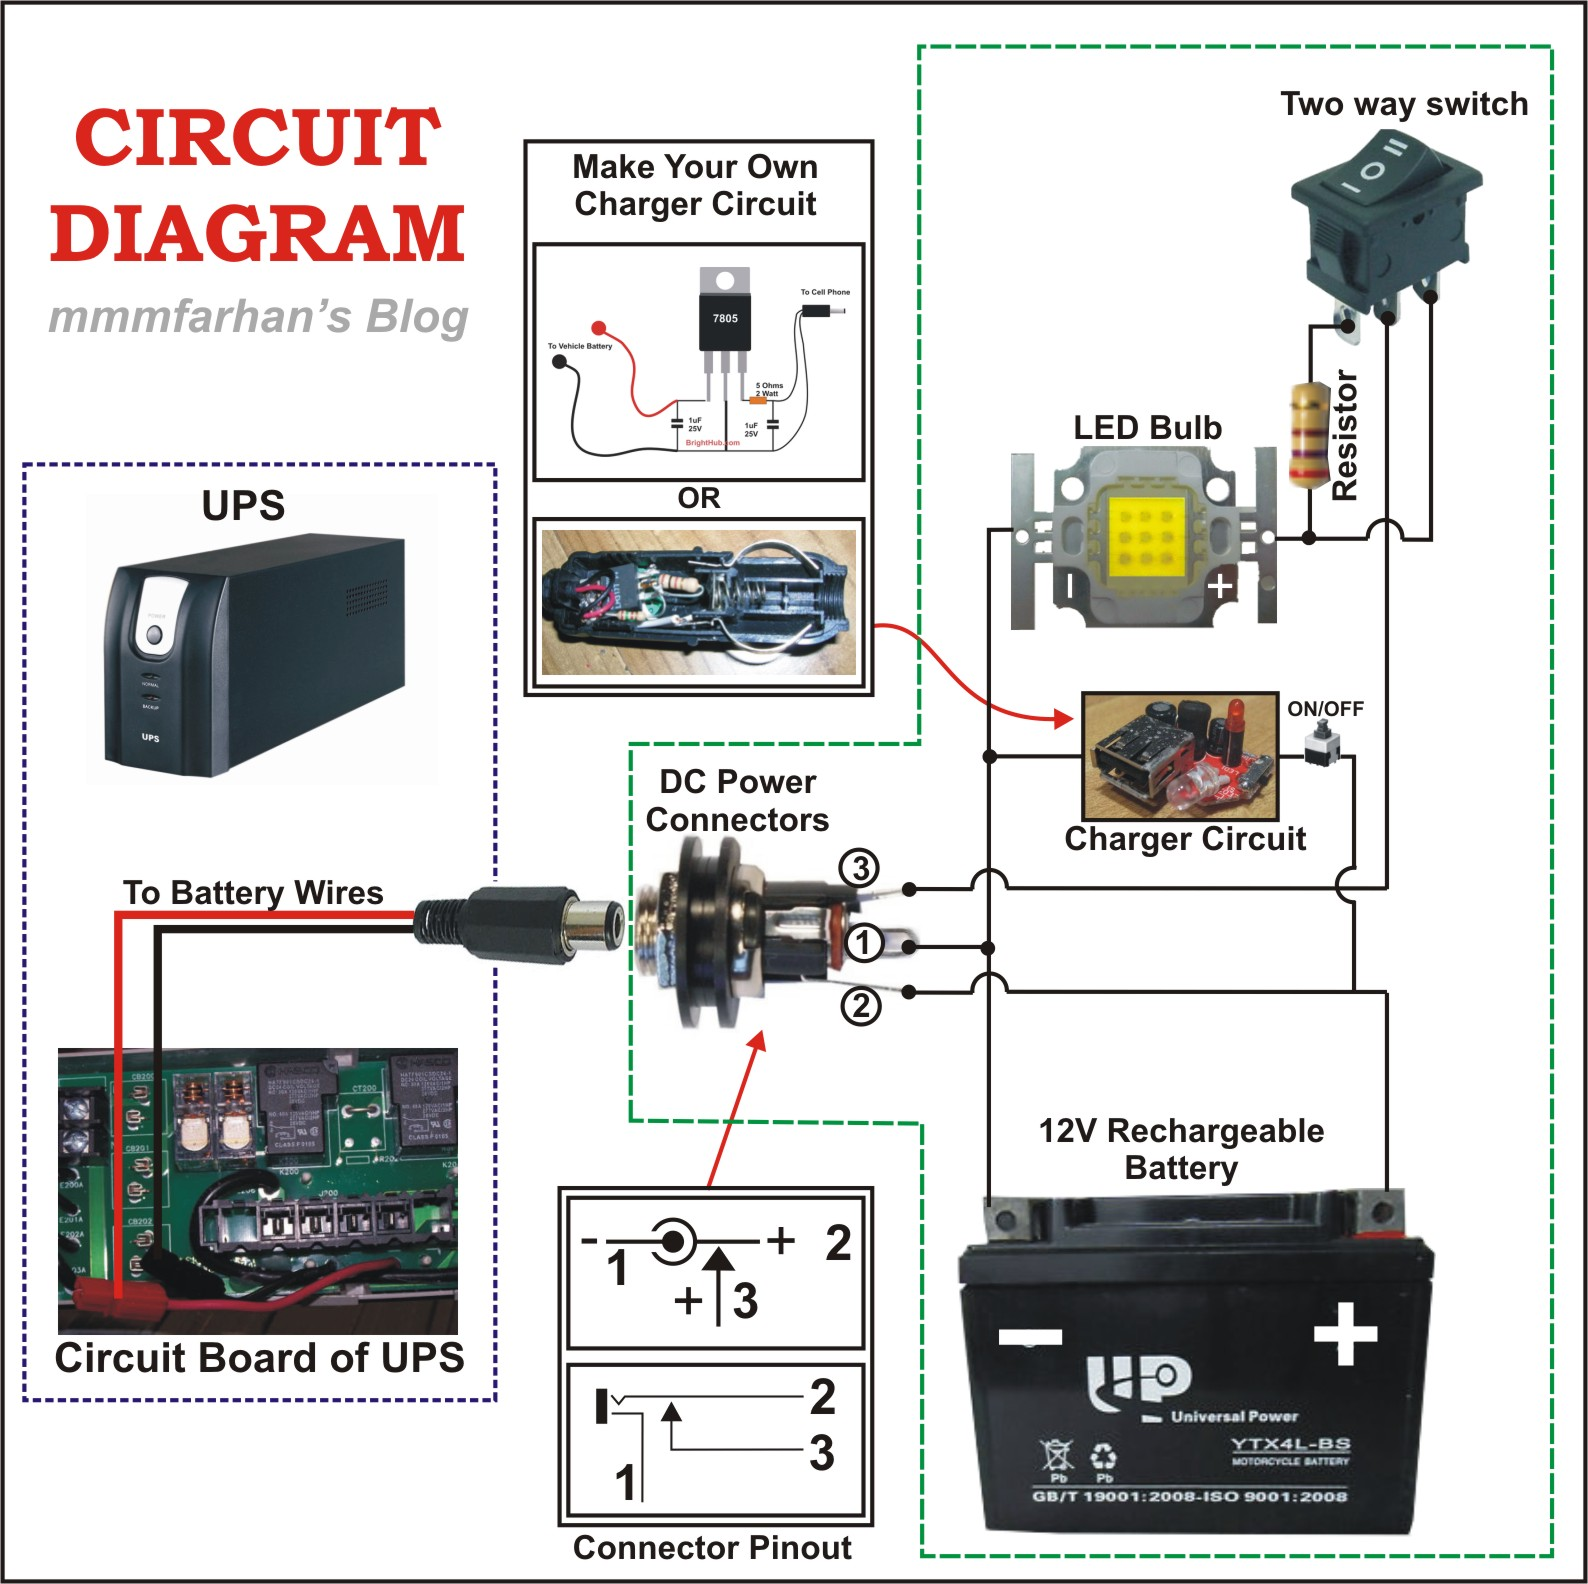 Ups Circuit Diagram Free Download Wiring Diagrams Pictures Wiring